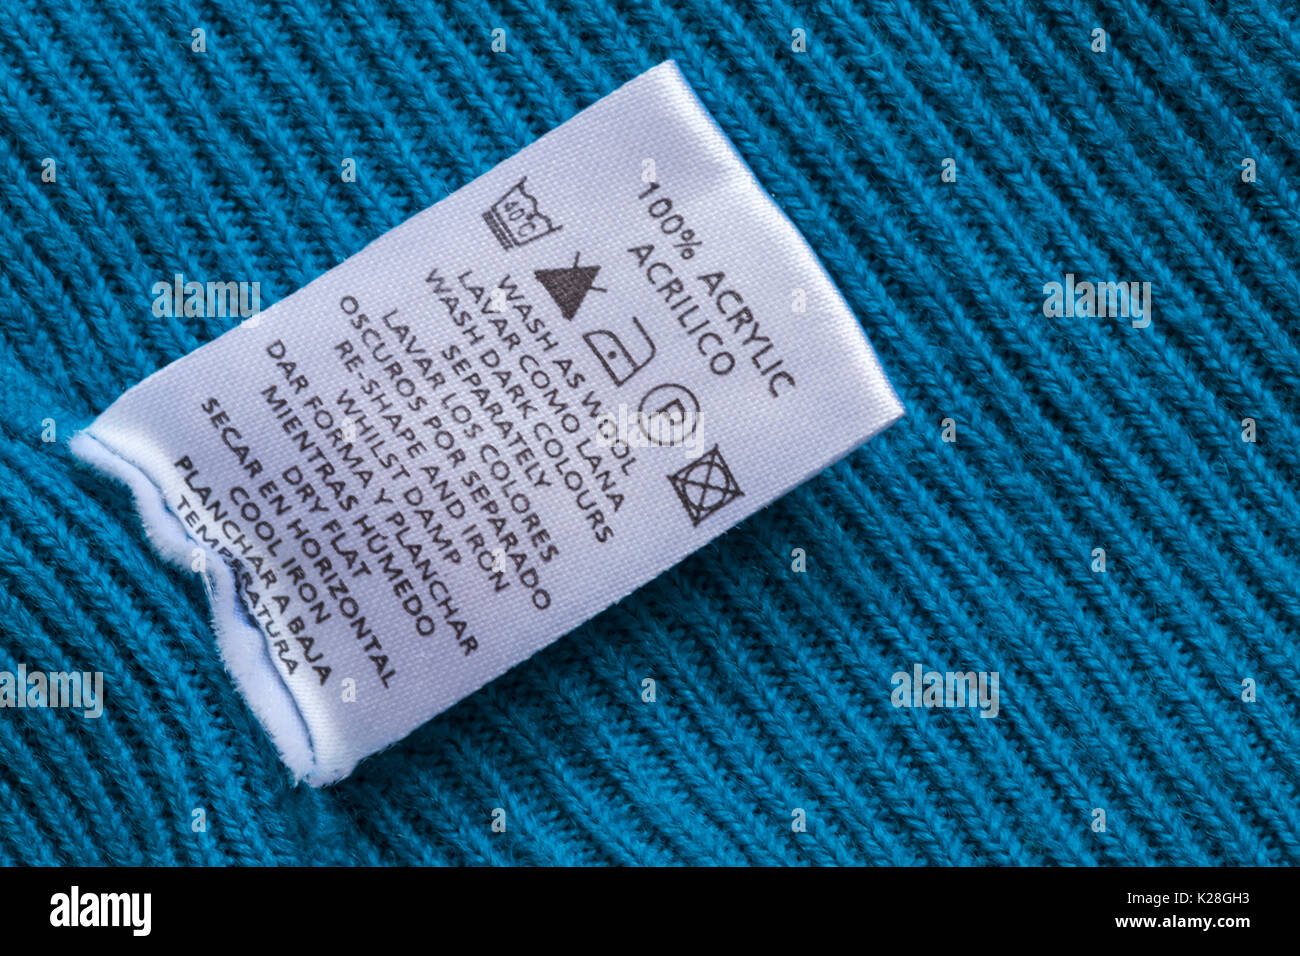 Care washing symbols and instructions on label in 100 acrylic care washing symbols and instructions on label in 100 acrylic blue jumper wash as wool wash dark colours separately in english and spanish biocorpaavc Choice Image